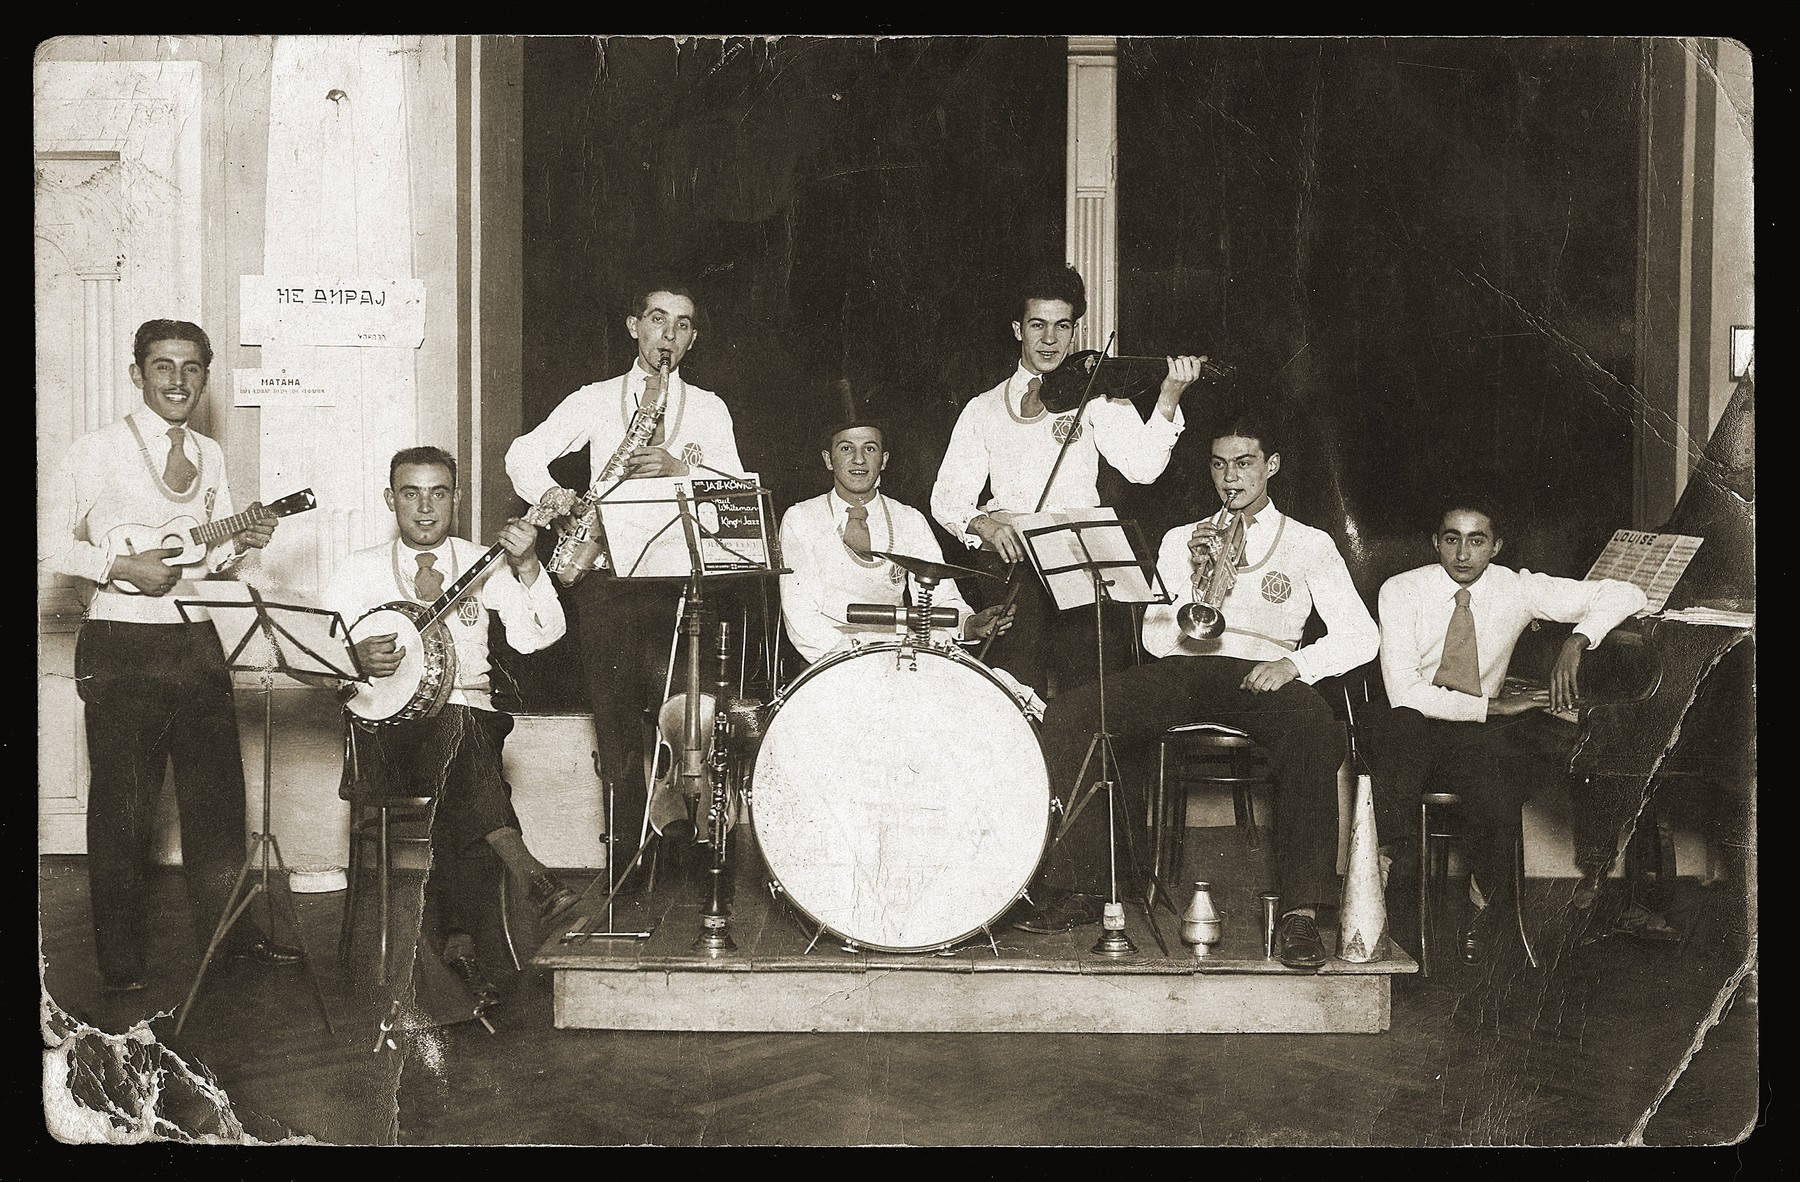 A Jewish youth band performs in Belgrade.    Mosa (Moshe) Mandil is pictured at the far left.